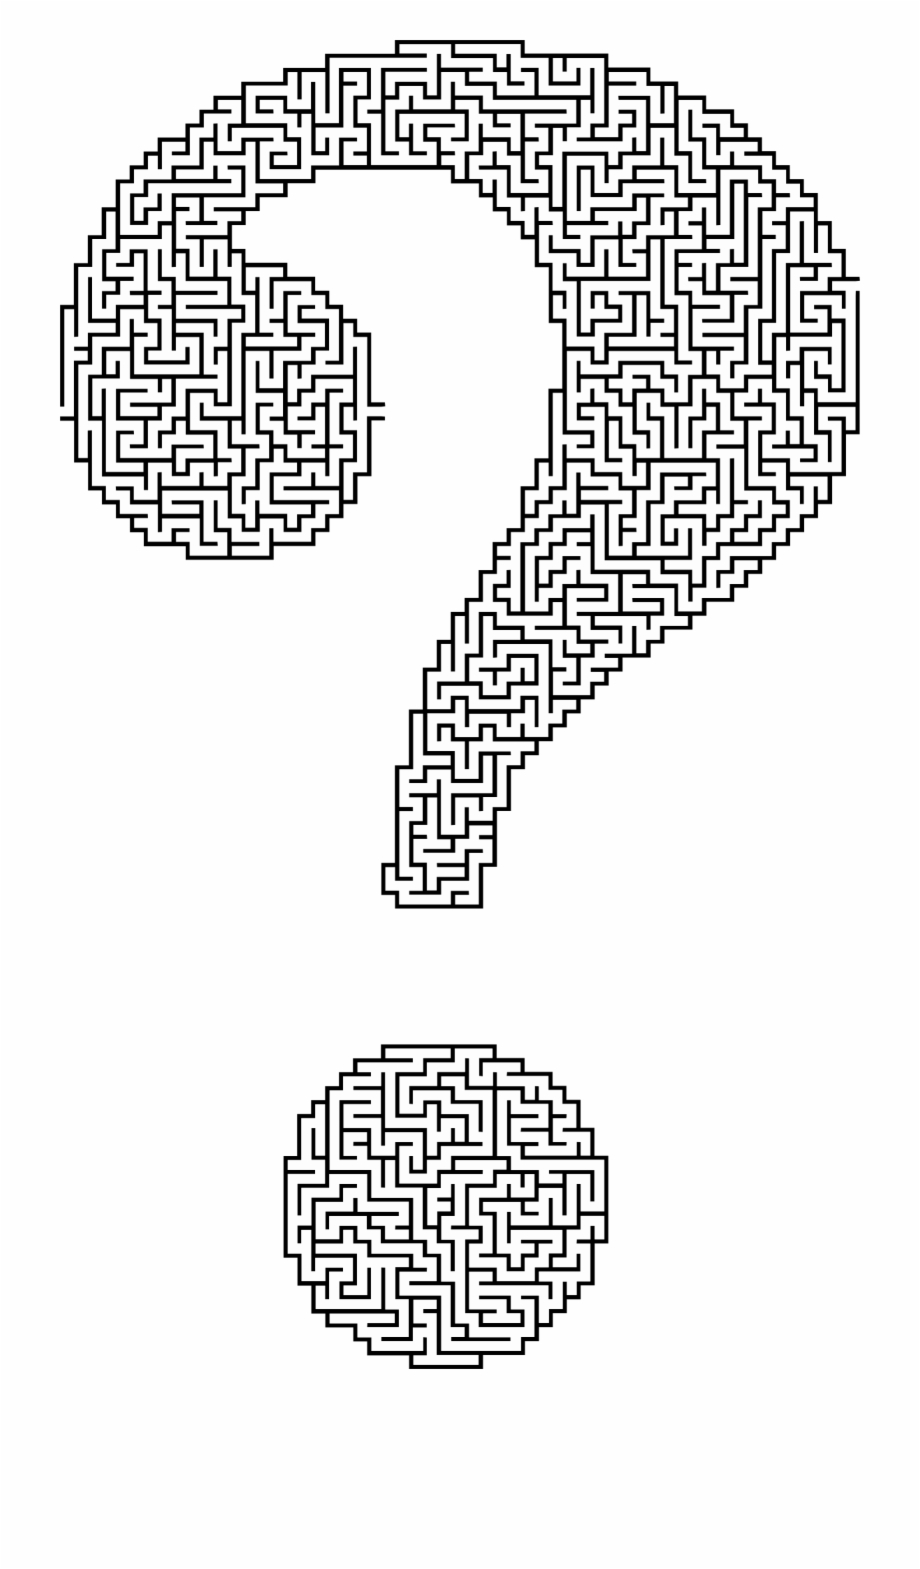 This Free Icons Png Design Of Question Mark Maze.